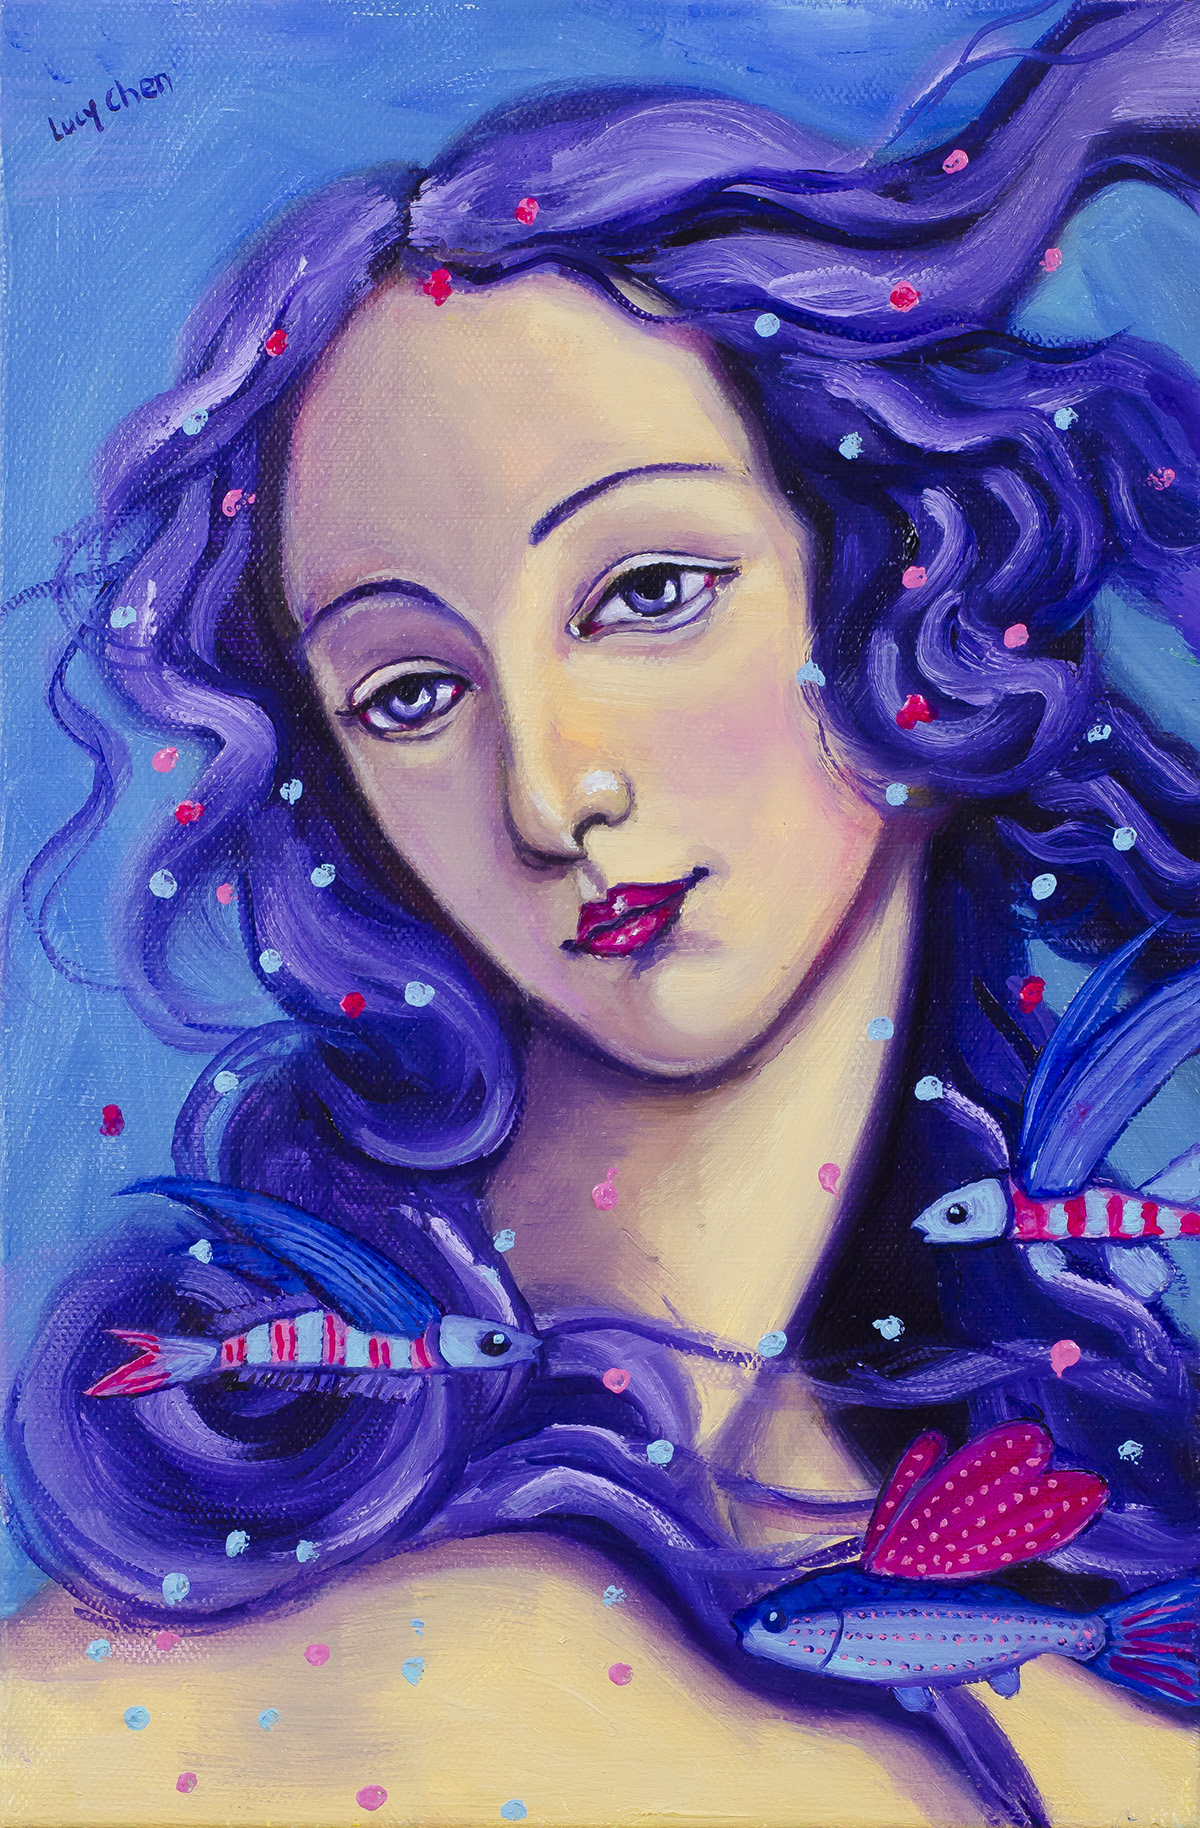 VENUS AND HER FLYING FISH, oil on stretched canvas,by Lucy Chen. Original Sold.